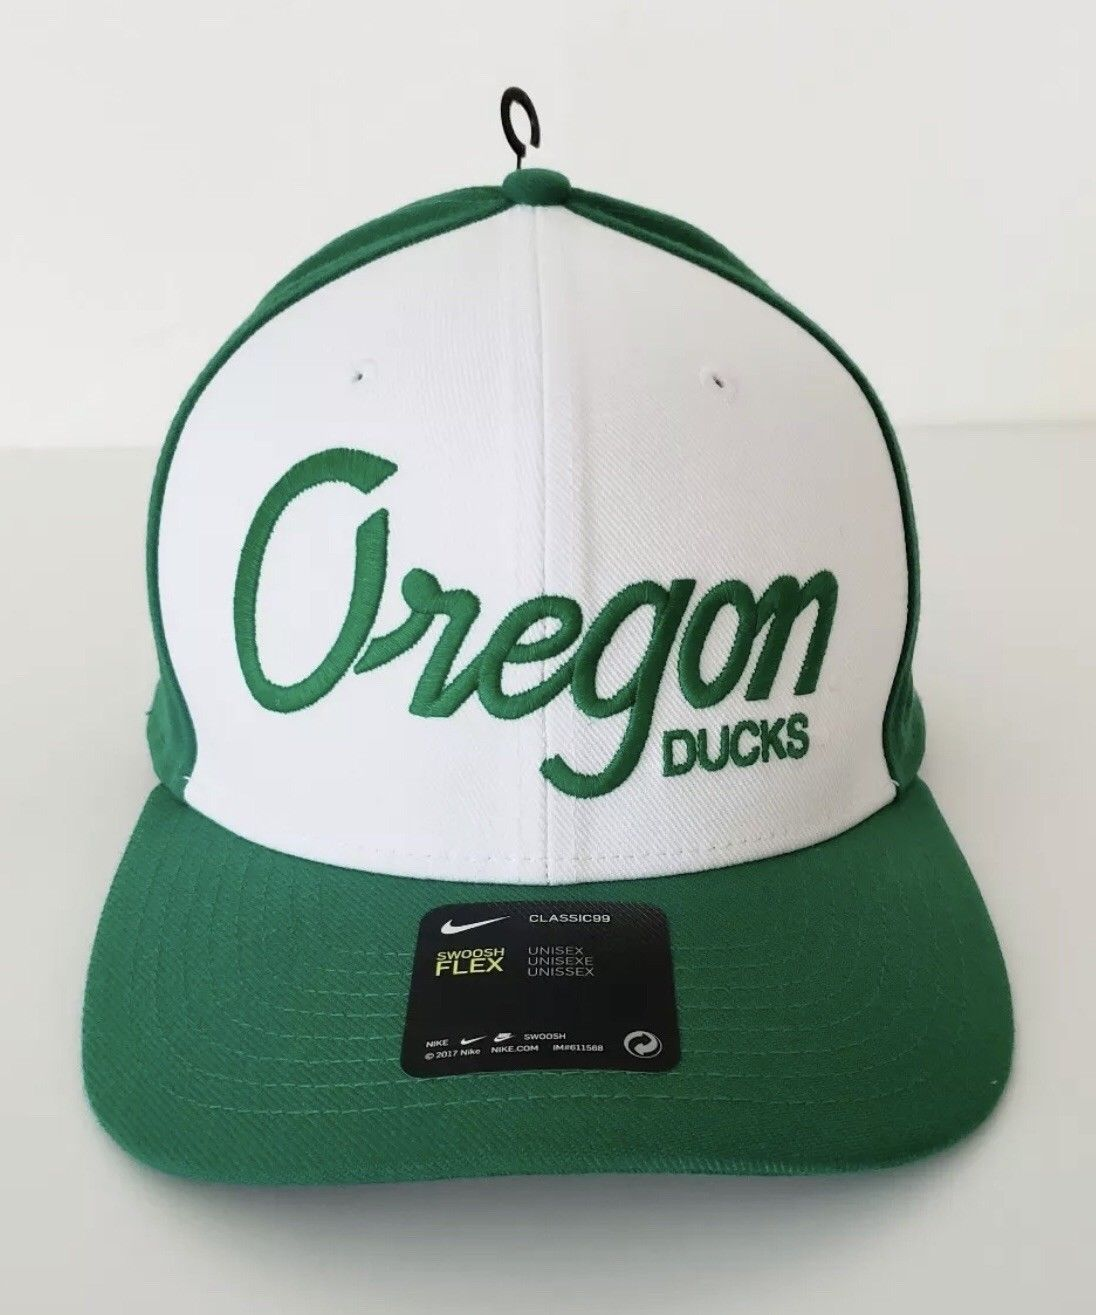 New Unisex Nike Classic 99 Oregon Ducks Football Swoosh Flex Fit Dri-Fit Hat Cap